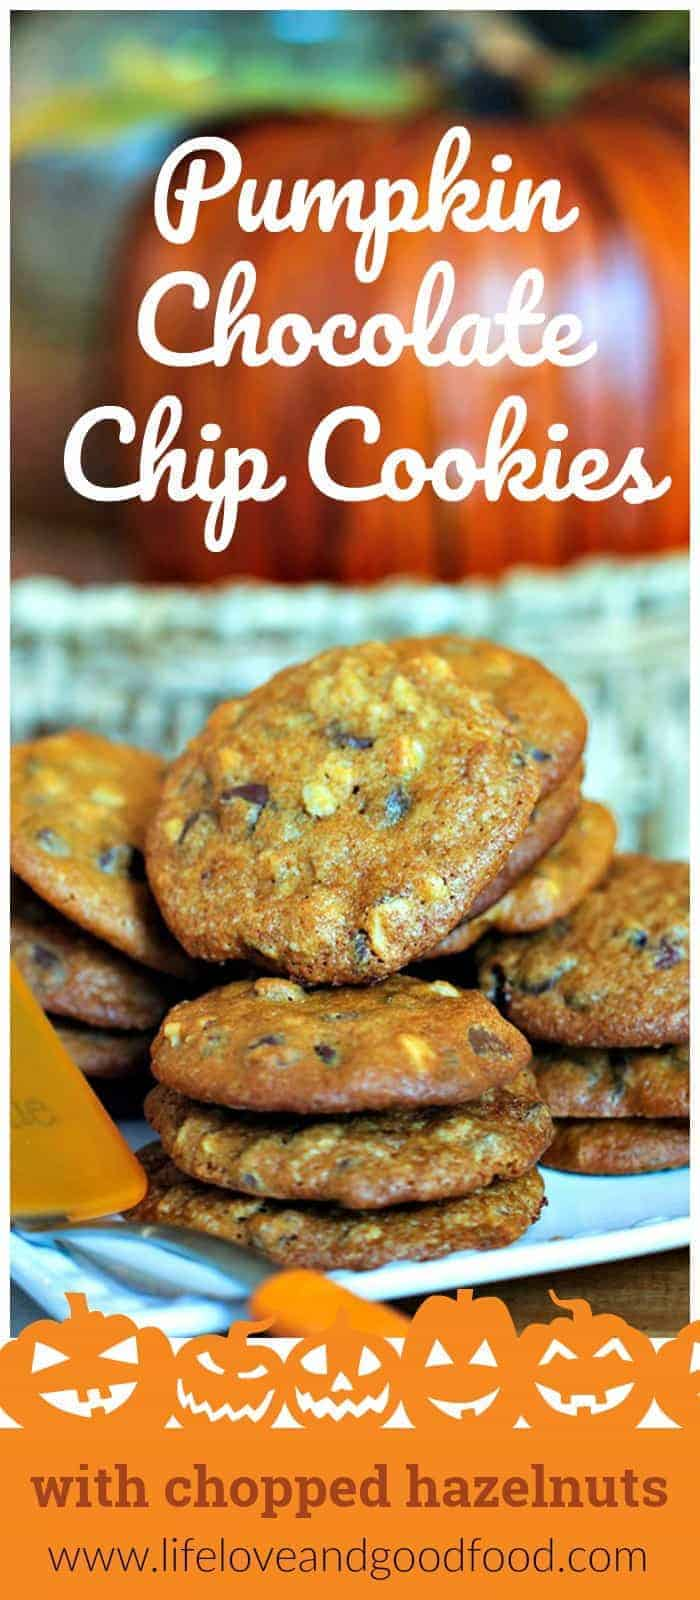 Pumpkin Chocolate Chip Cookies—light and airy pumpkin cookies chock full of chocolate chips and chopped hazelnuts—are perfect for Fall parties or tailgates!